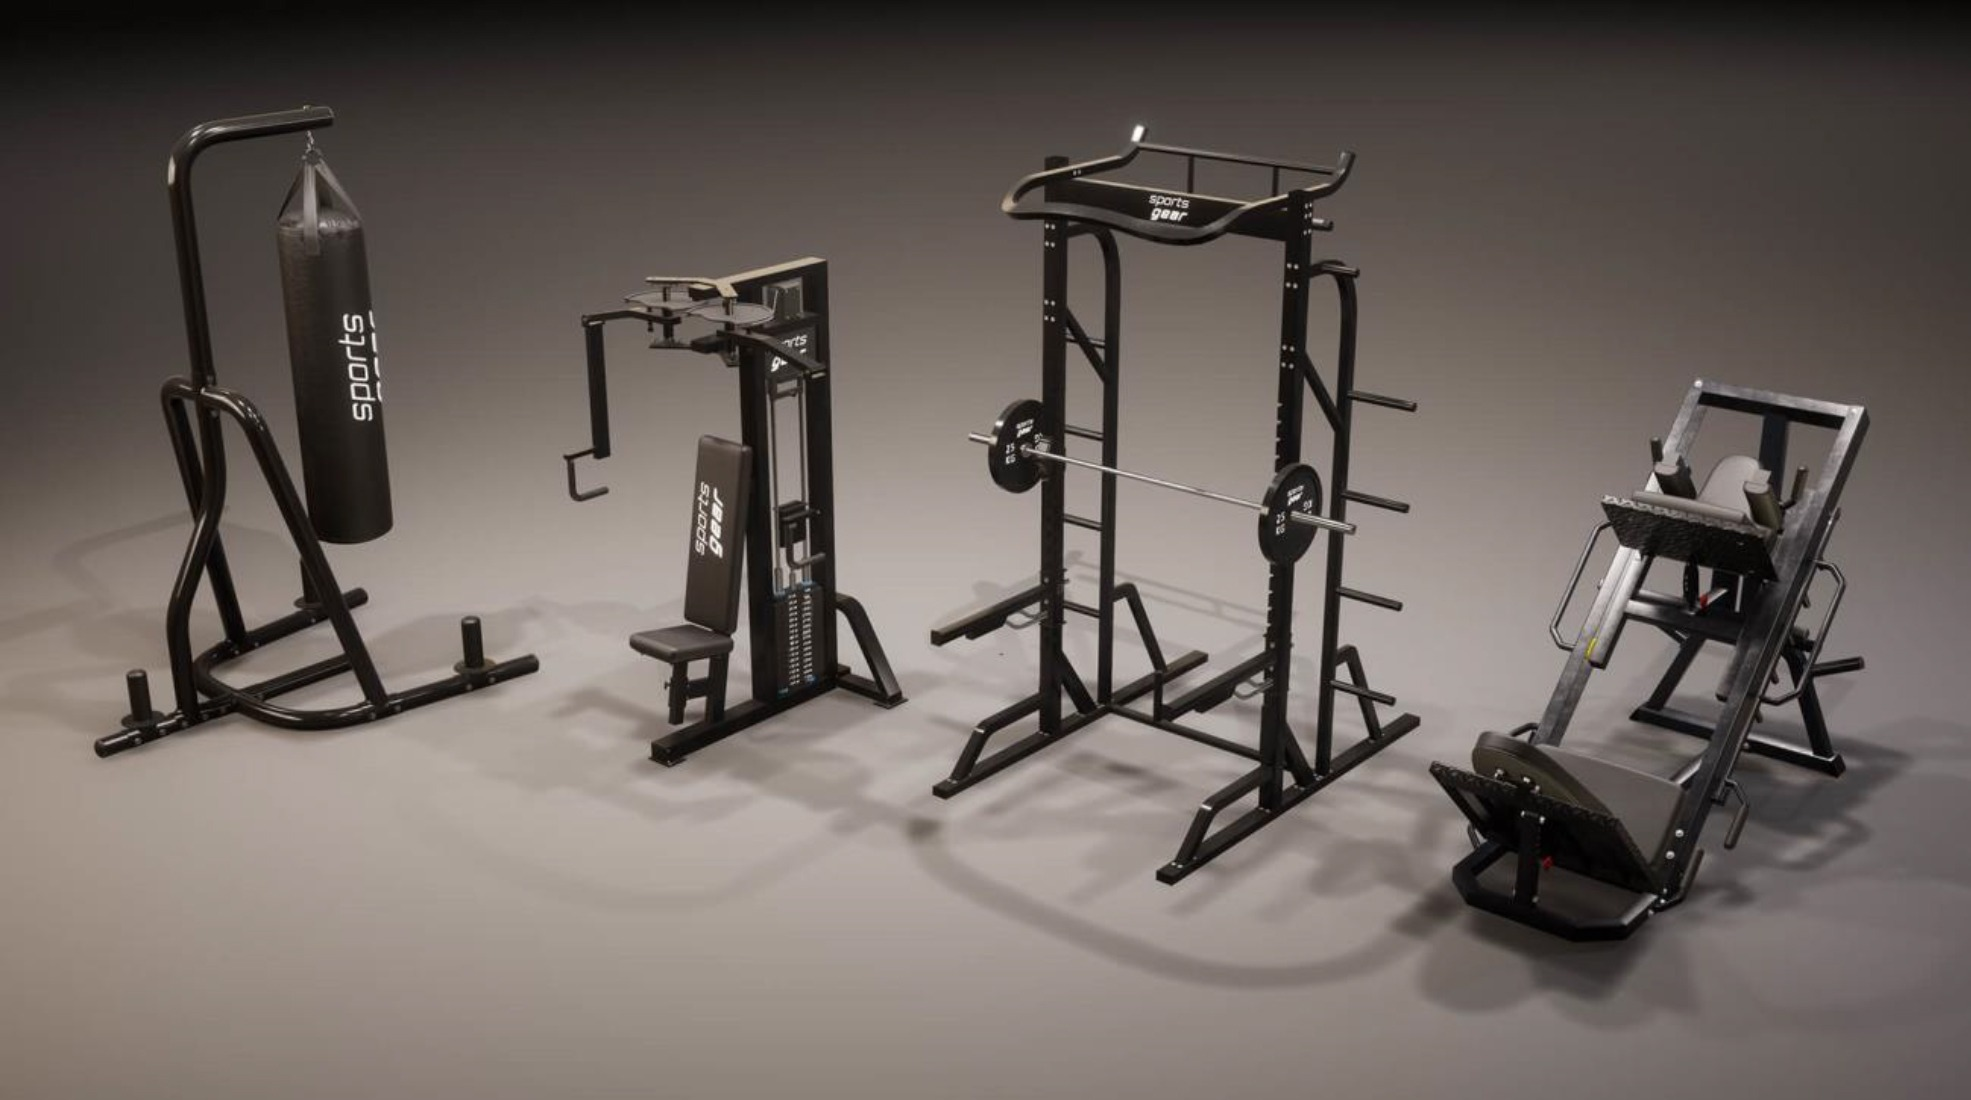 Twinmotion 2021.1 : New trees, humans, and workout furniture assets